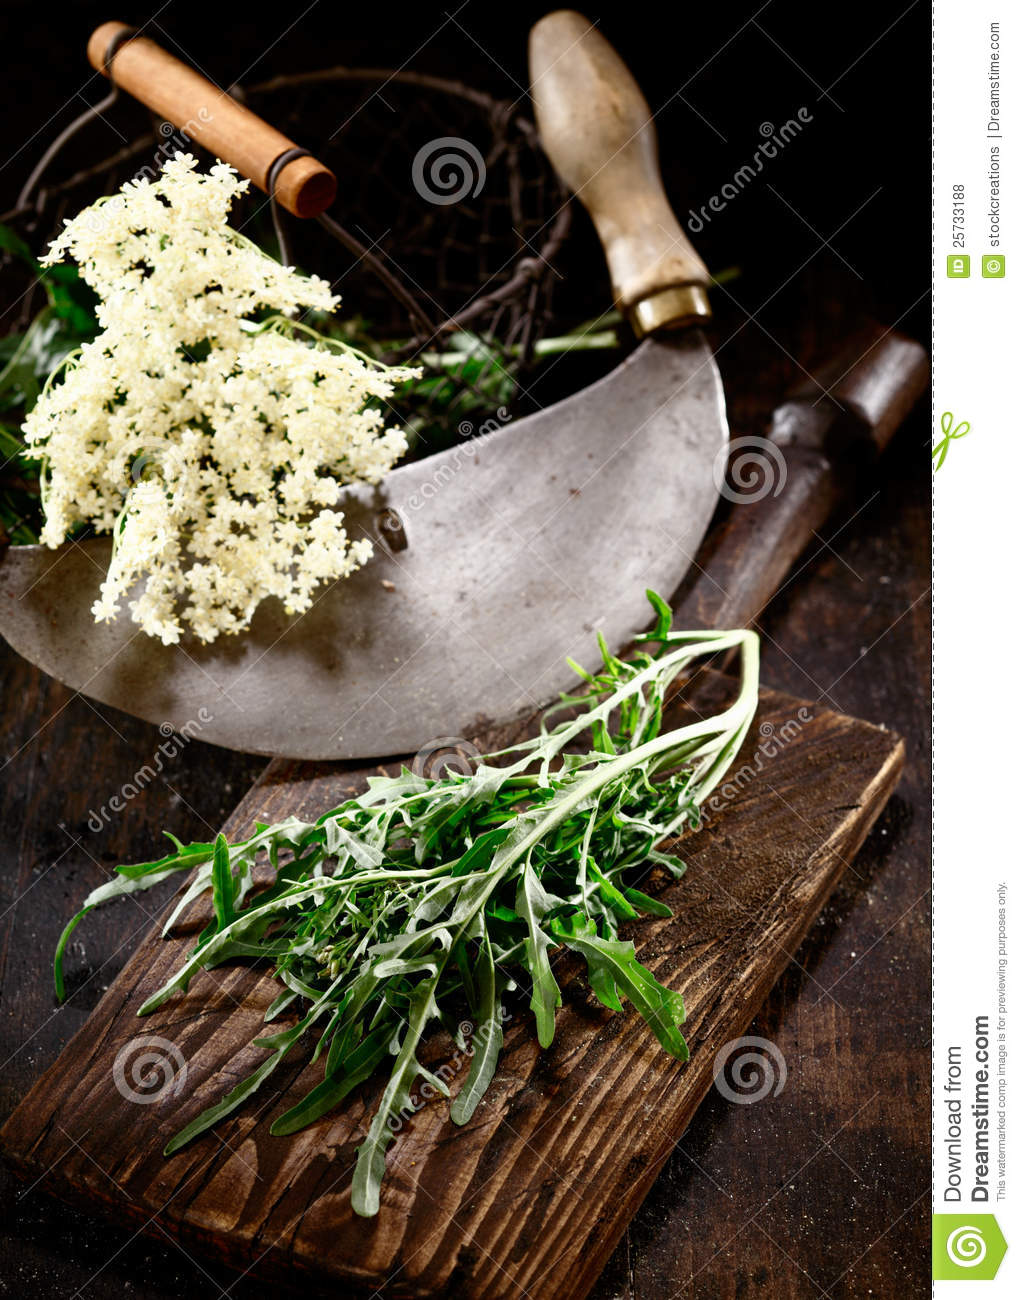 Old Chopping knife with elder